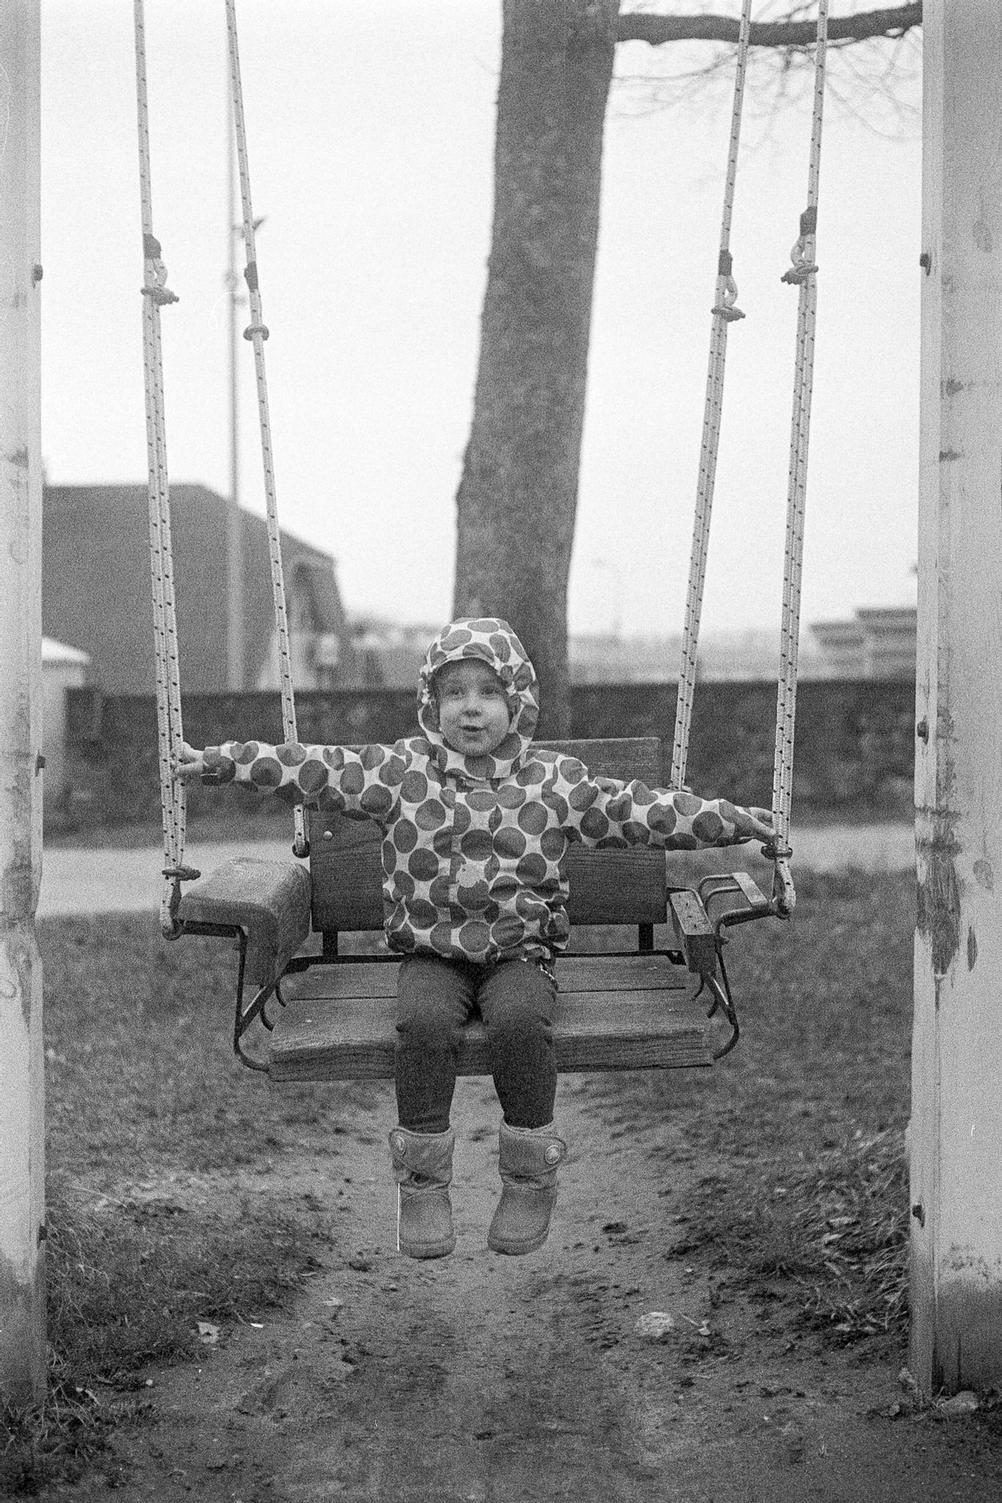 Photo of my daughter on a swing.